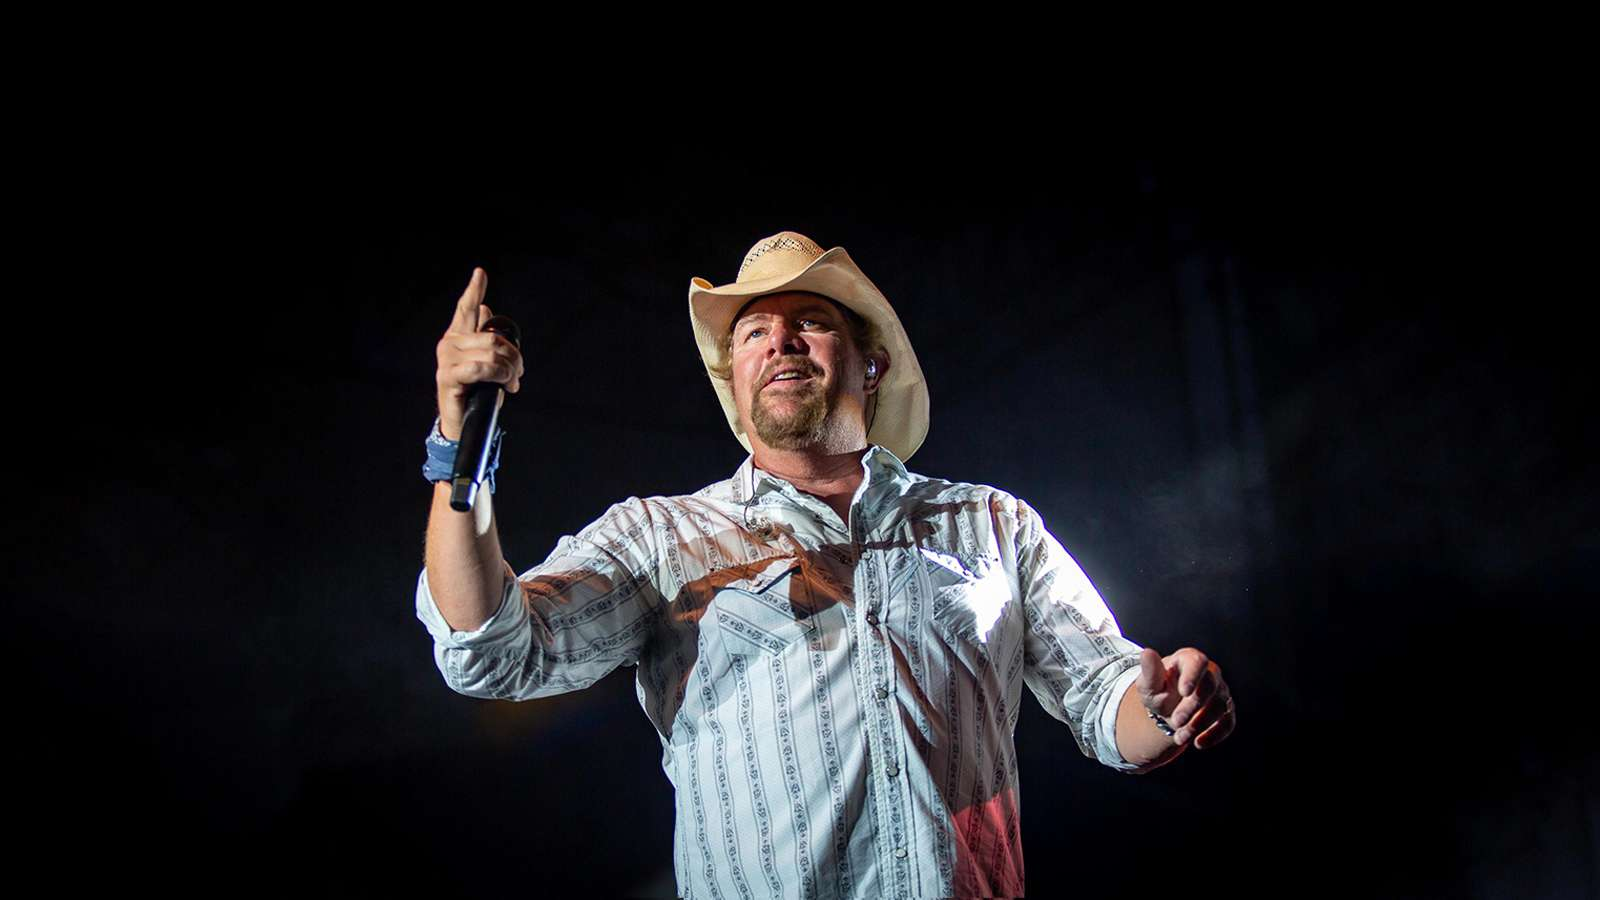 Toby Keith (Rescheduled from 6/4/2020, 8/29/2020)